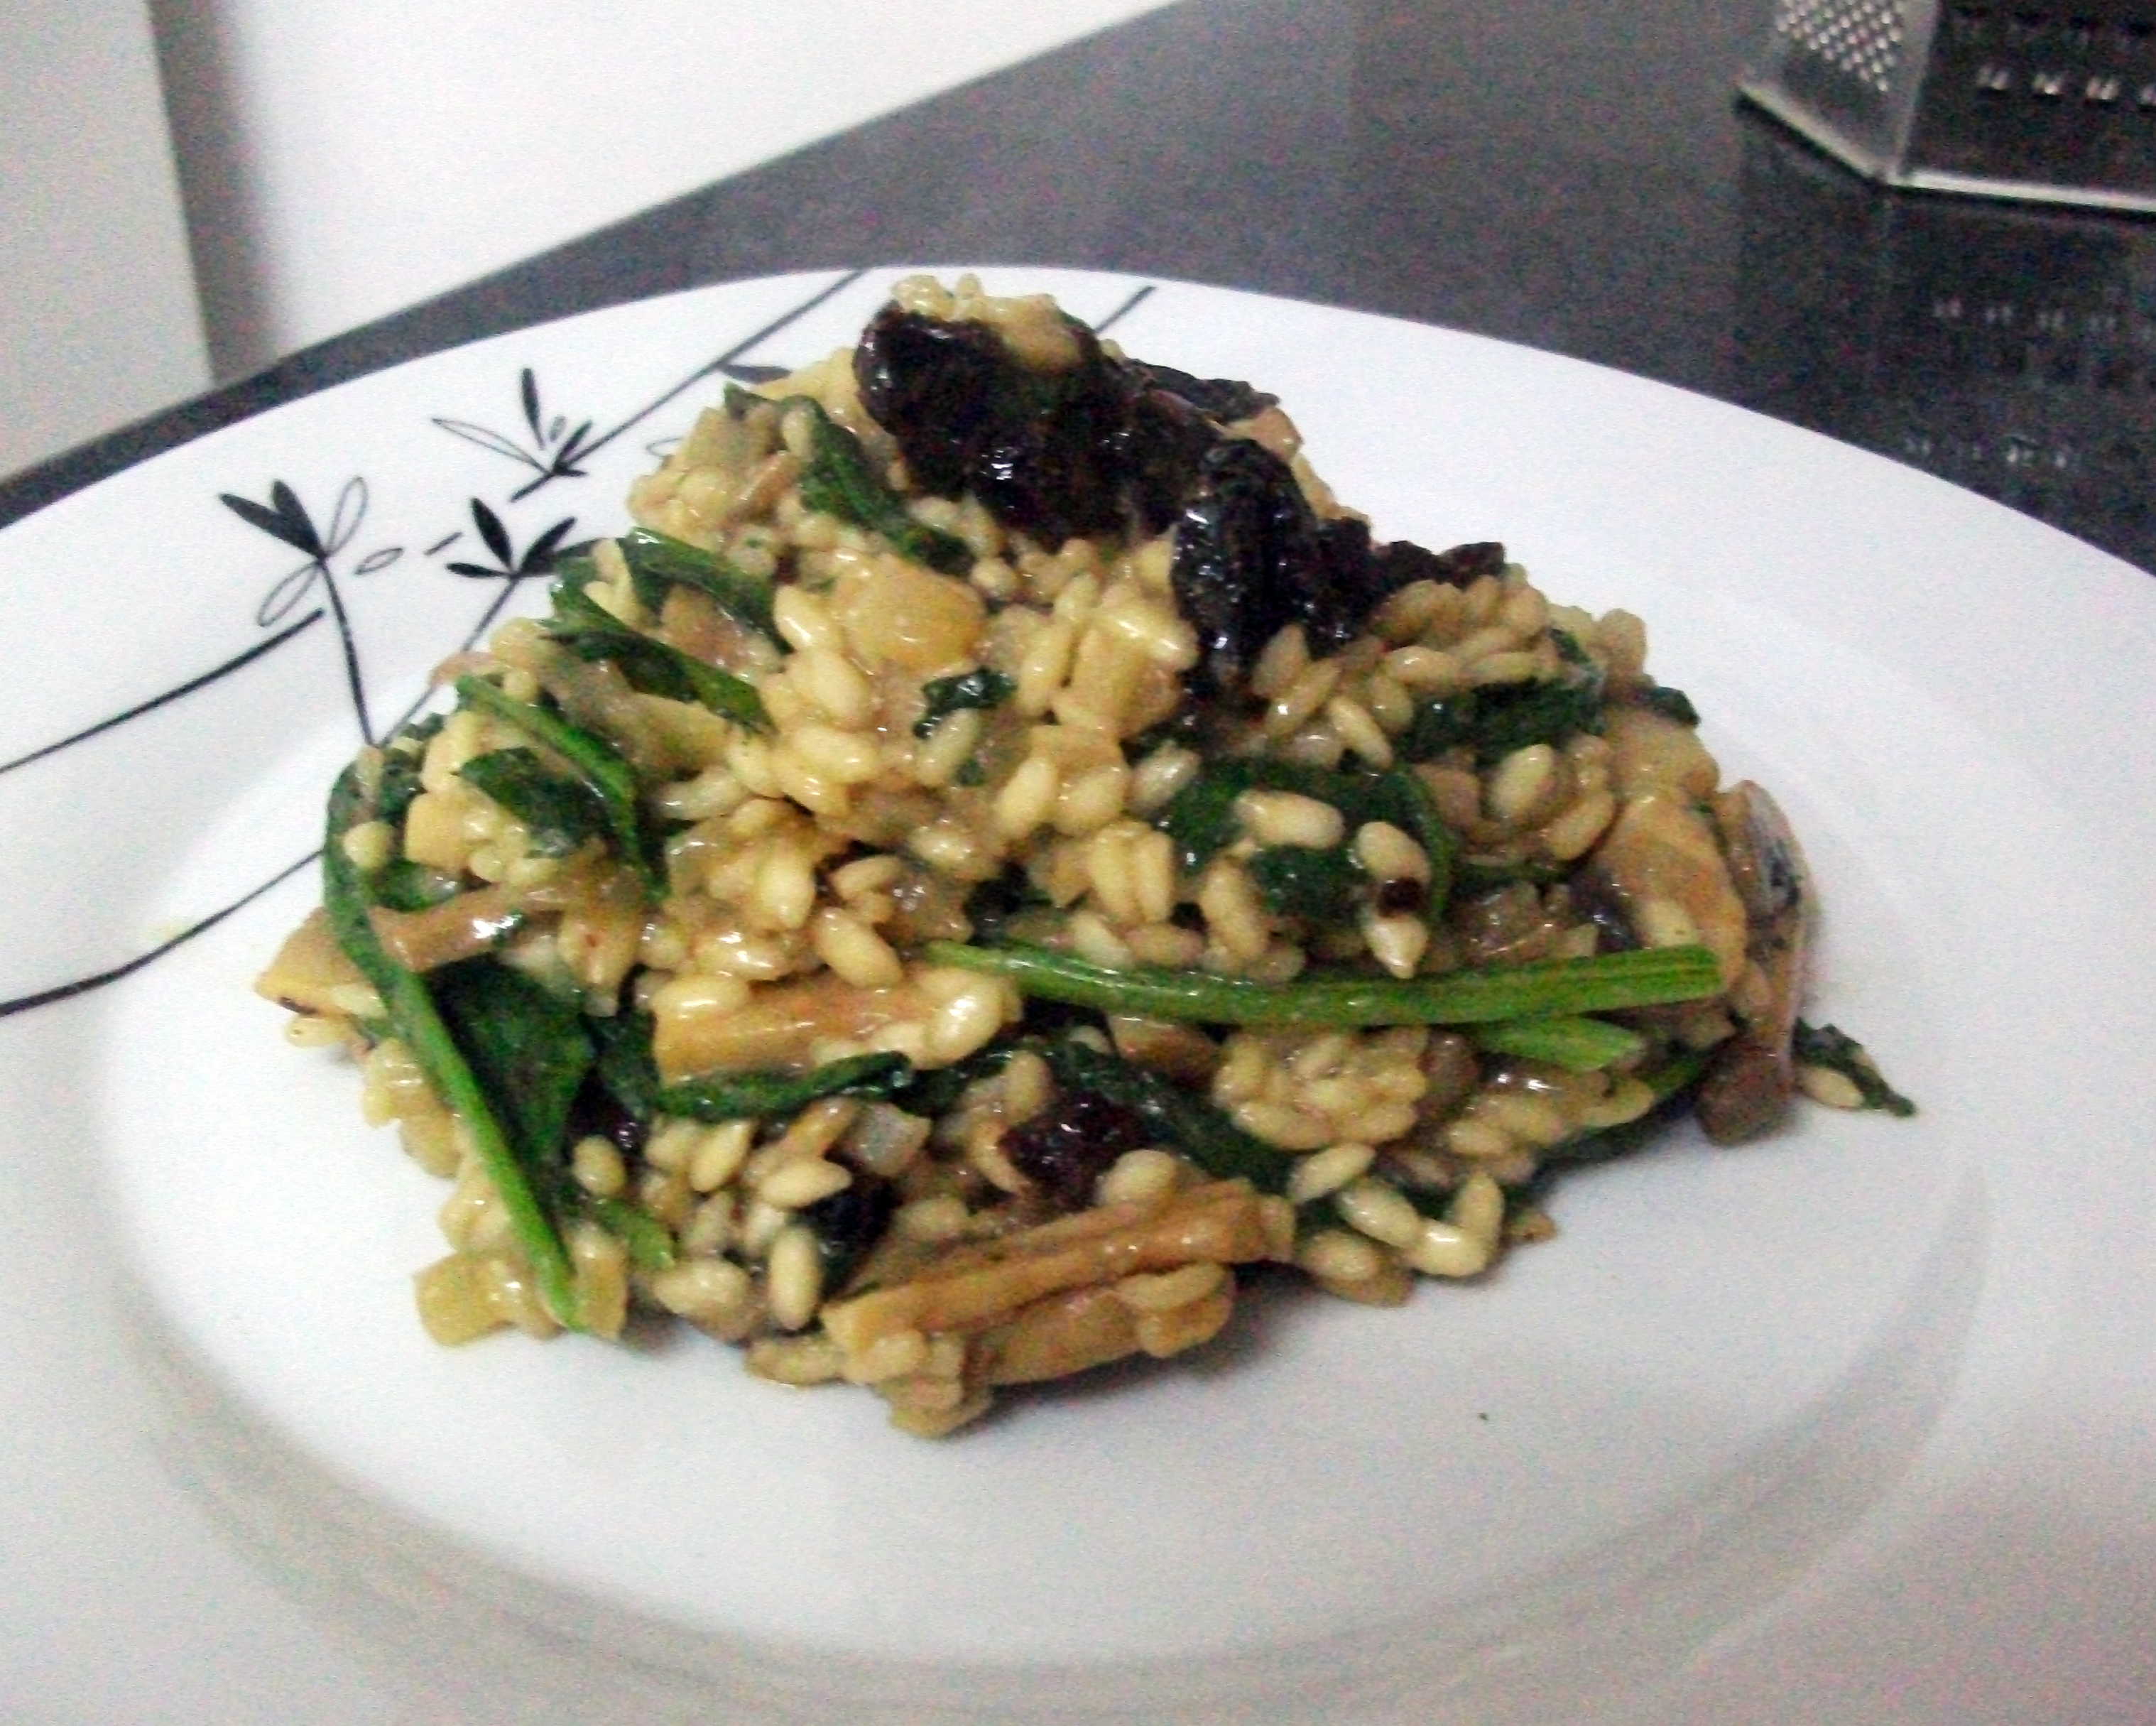 ... made easy with this Mushroom, Spinach and Sun-Dried Tomato Risotto